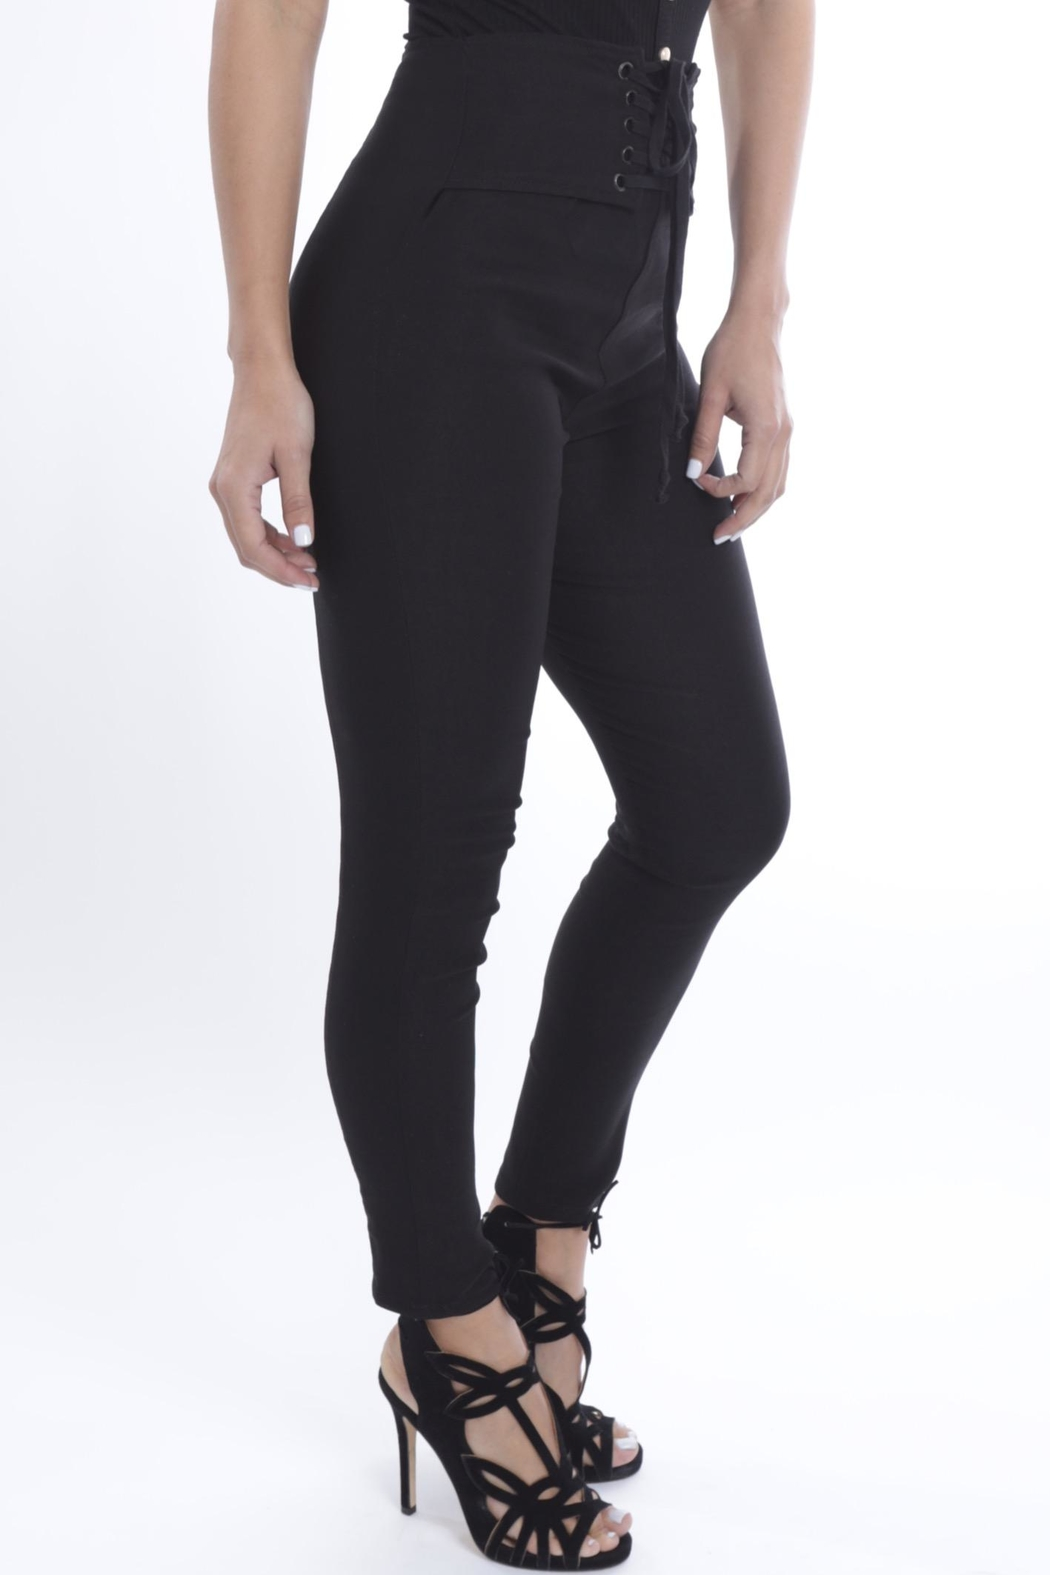 Cattiva Girl Lace-Up Black Pants - Front Full Image